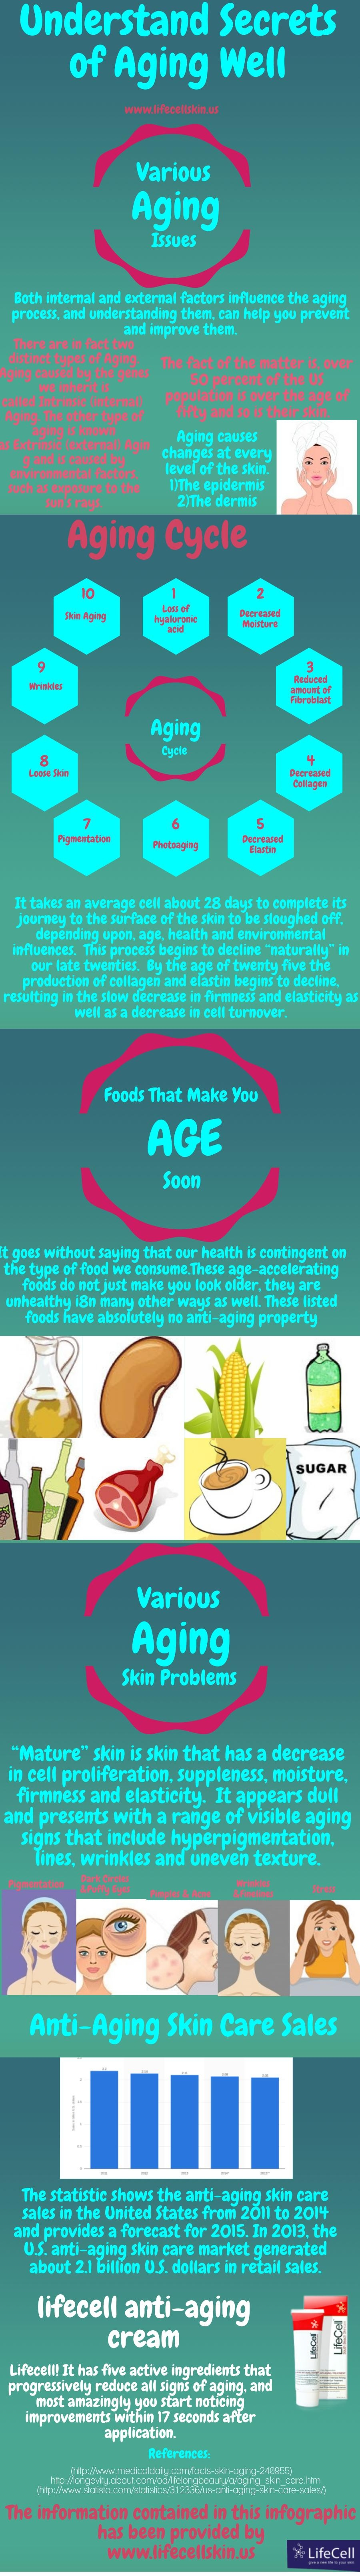 the-secrets-of-aging-well